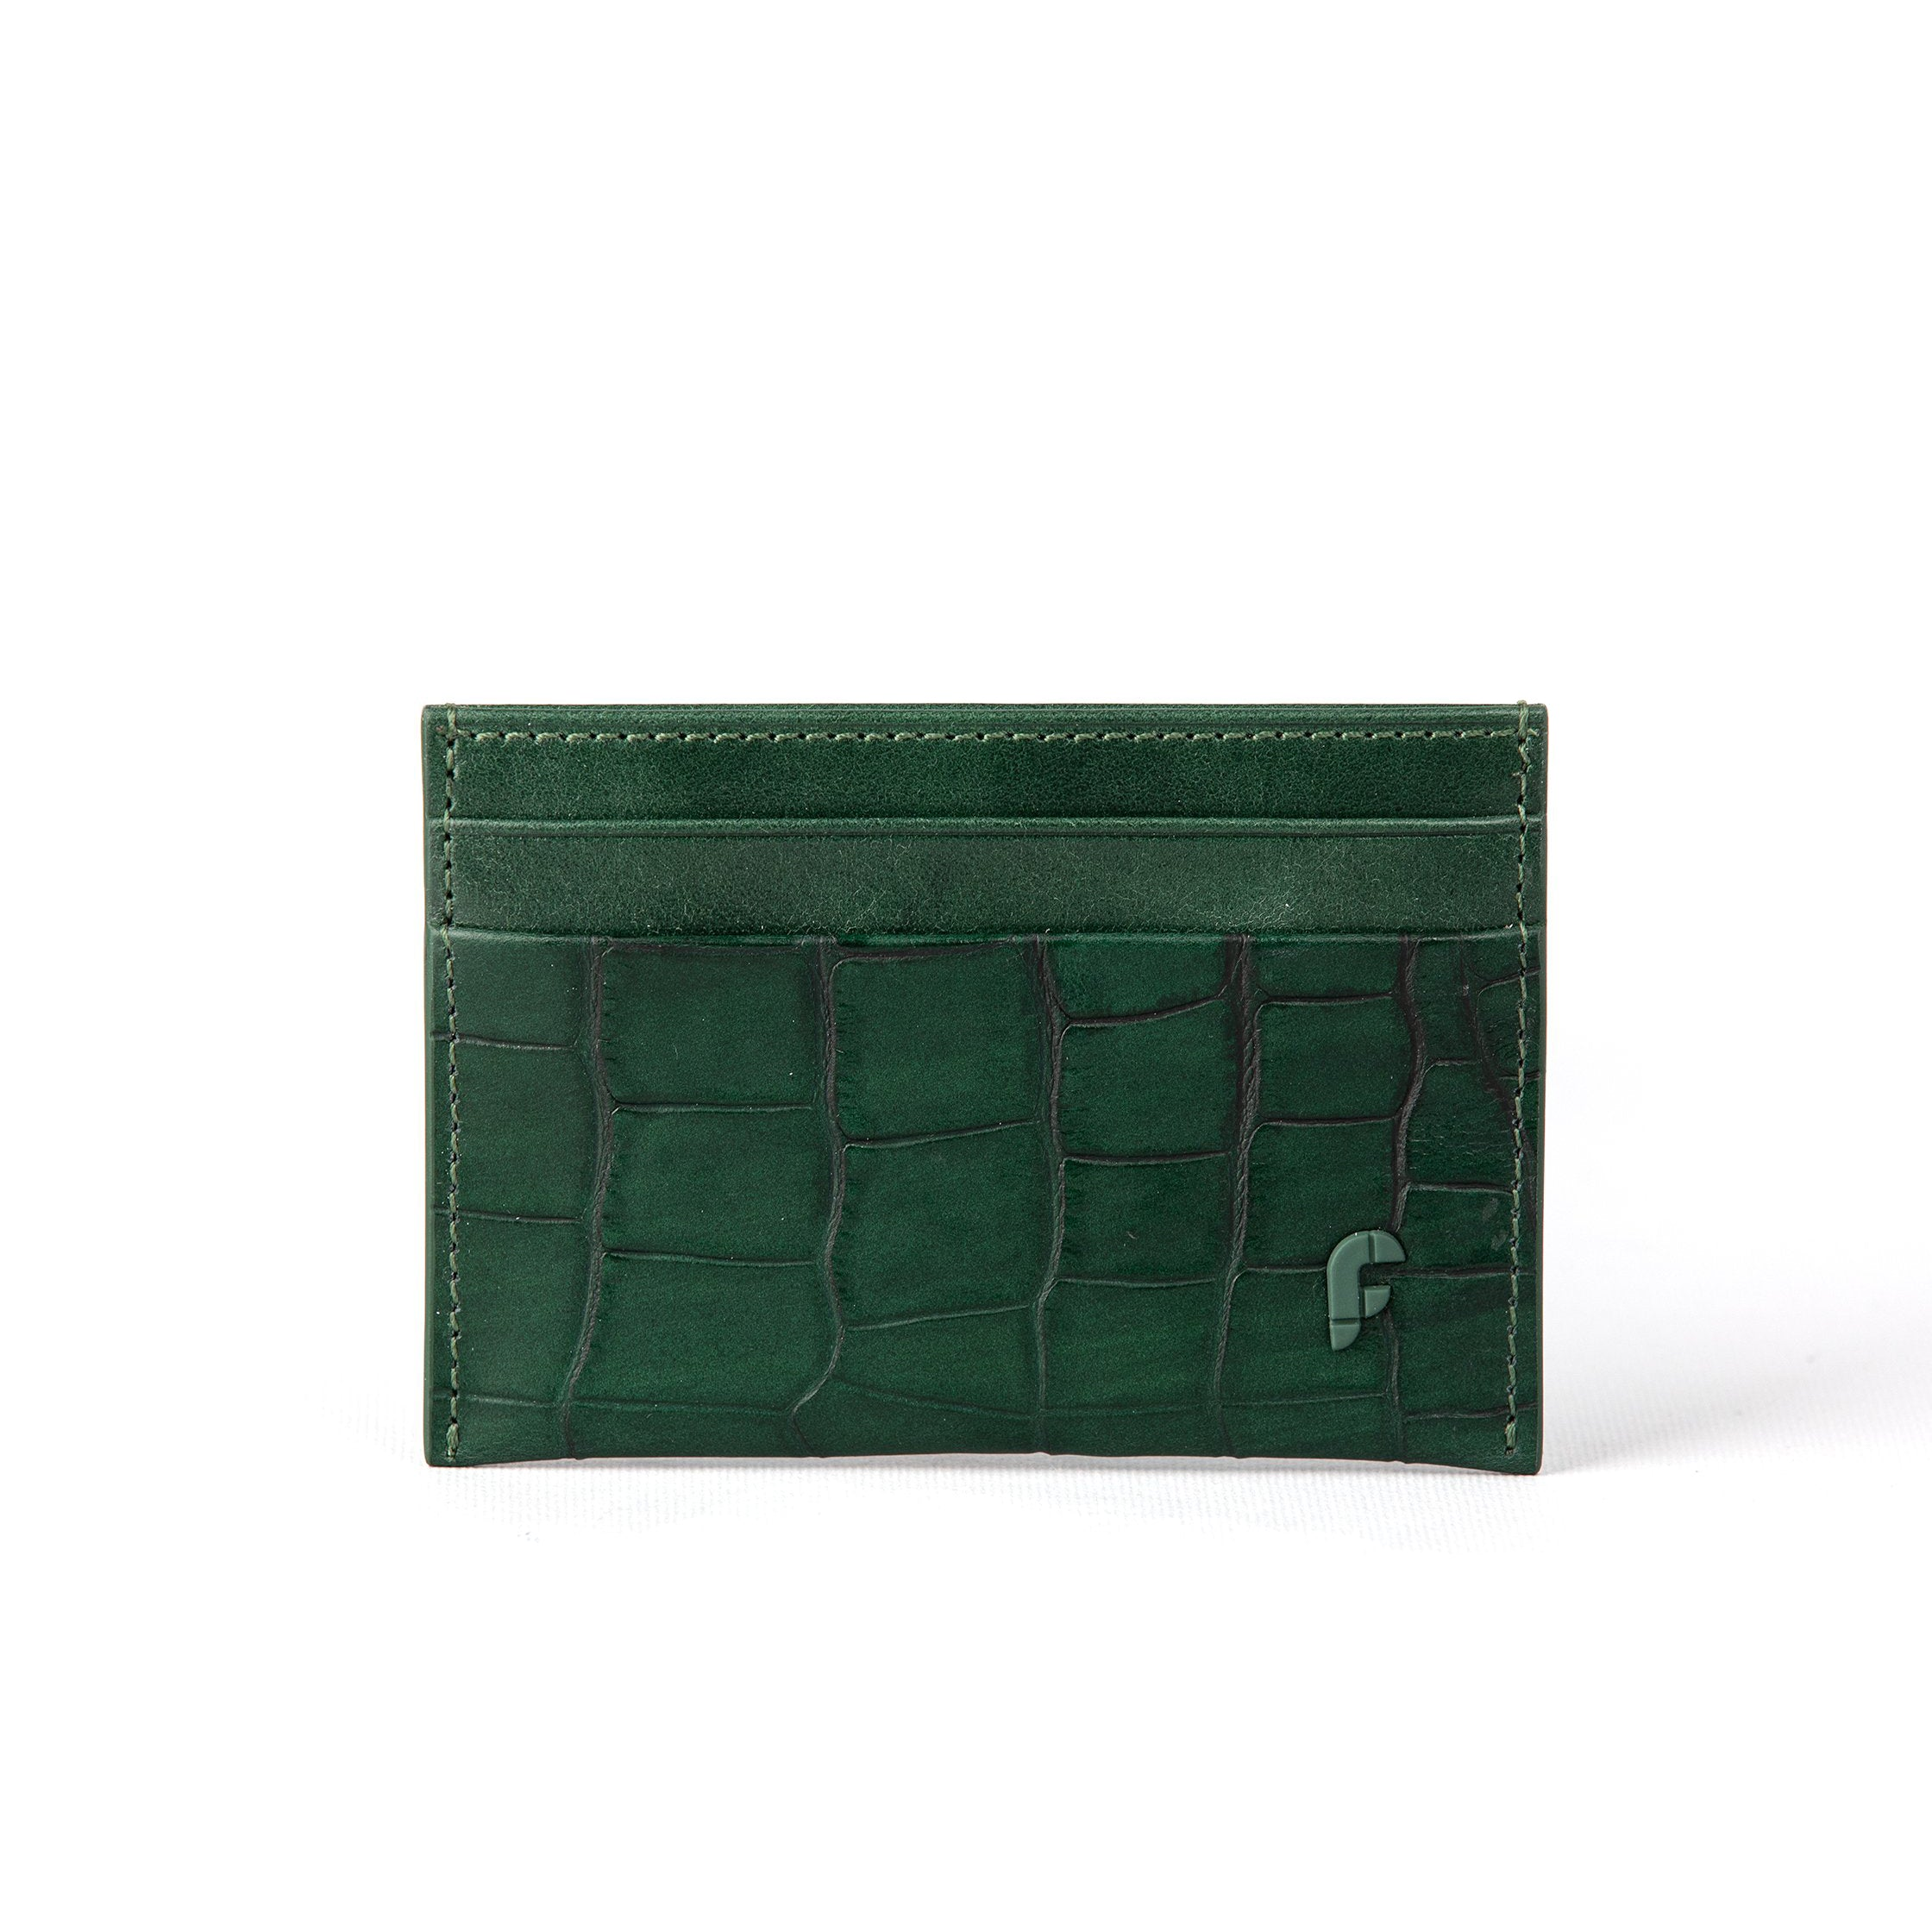 Green Matt Croco Credit Card Holder (FP106)